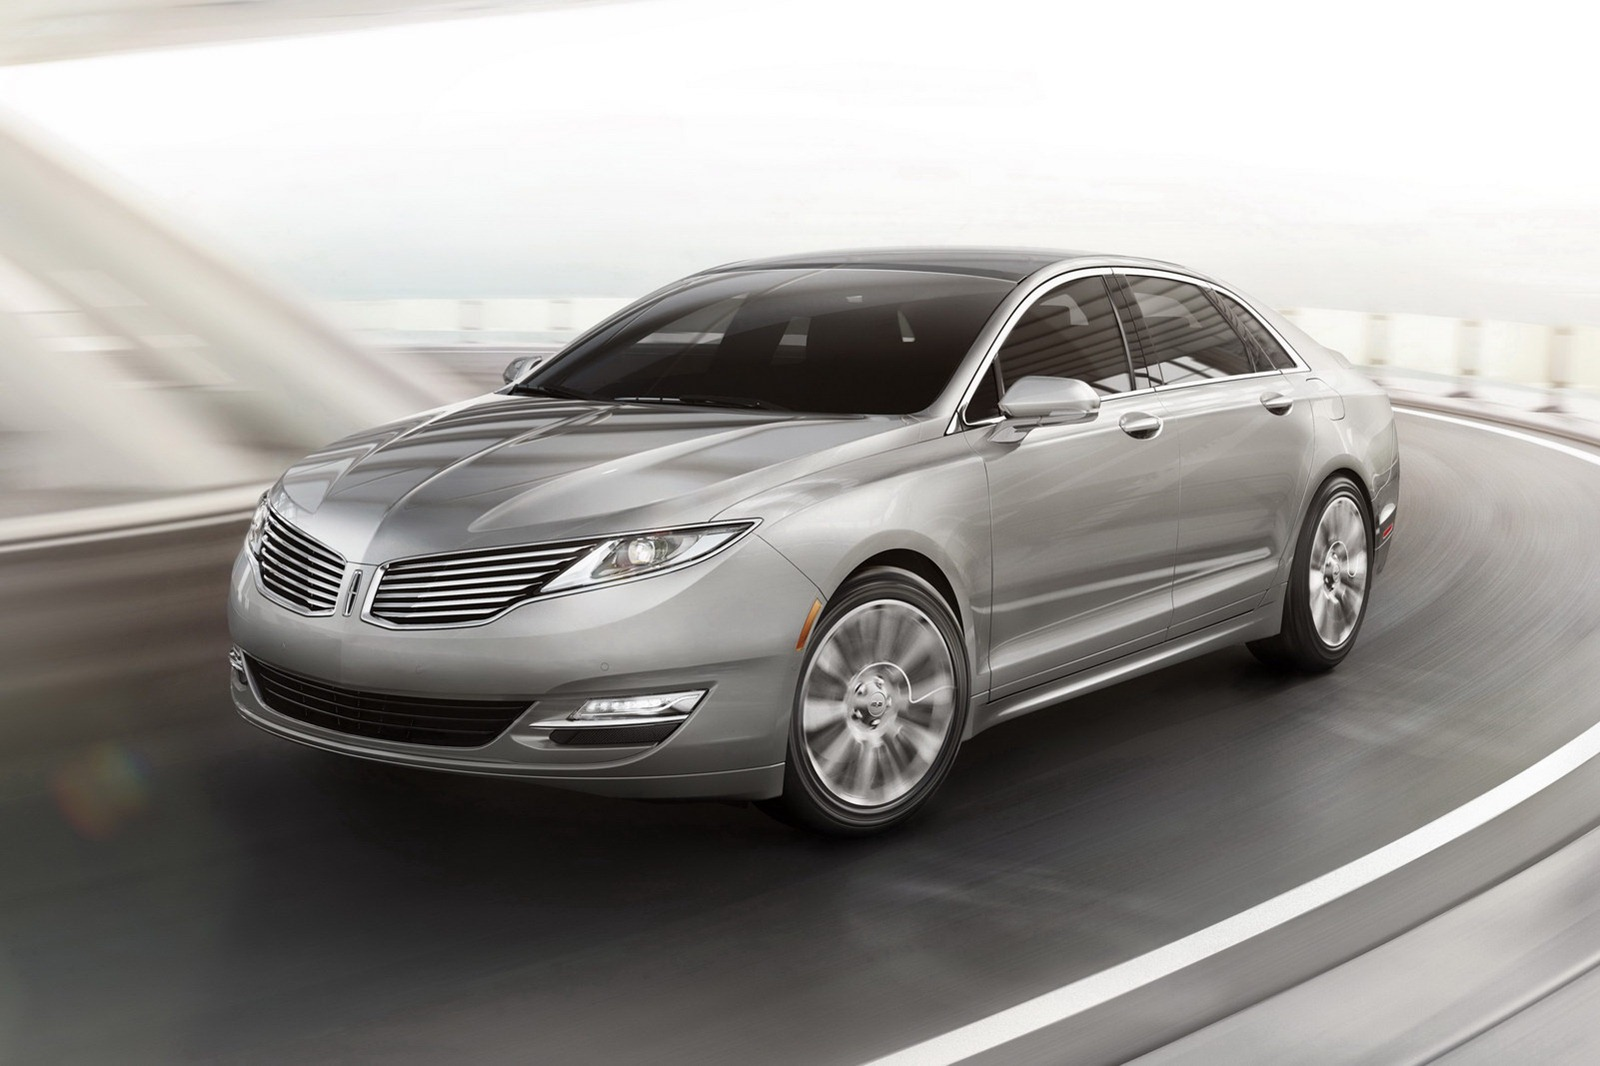 Lincoln prices the new 2013 MKZ sedan $35,925